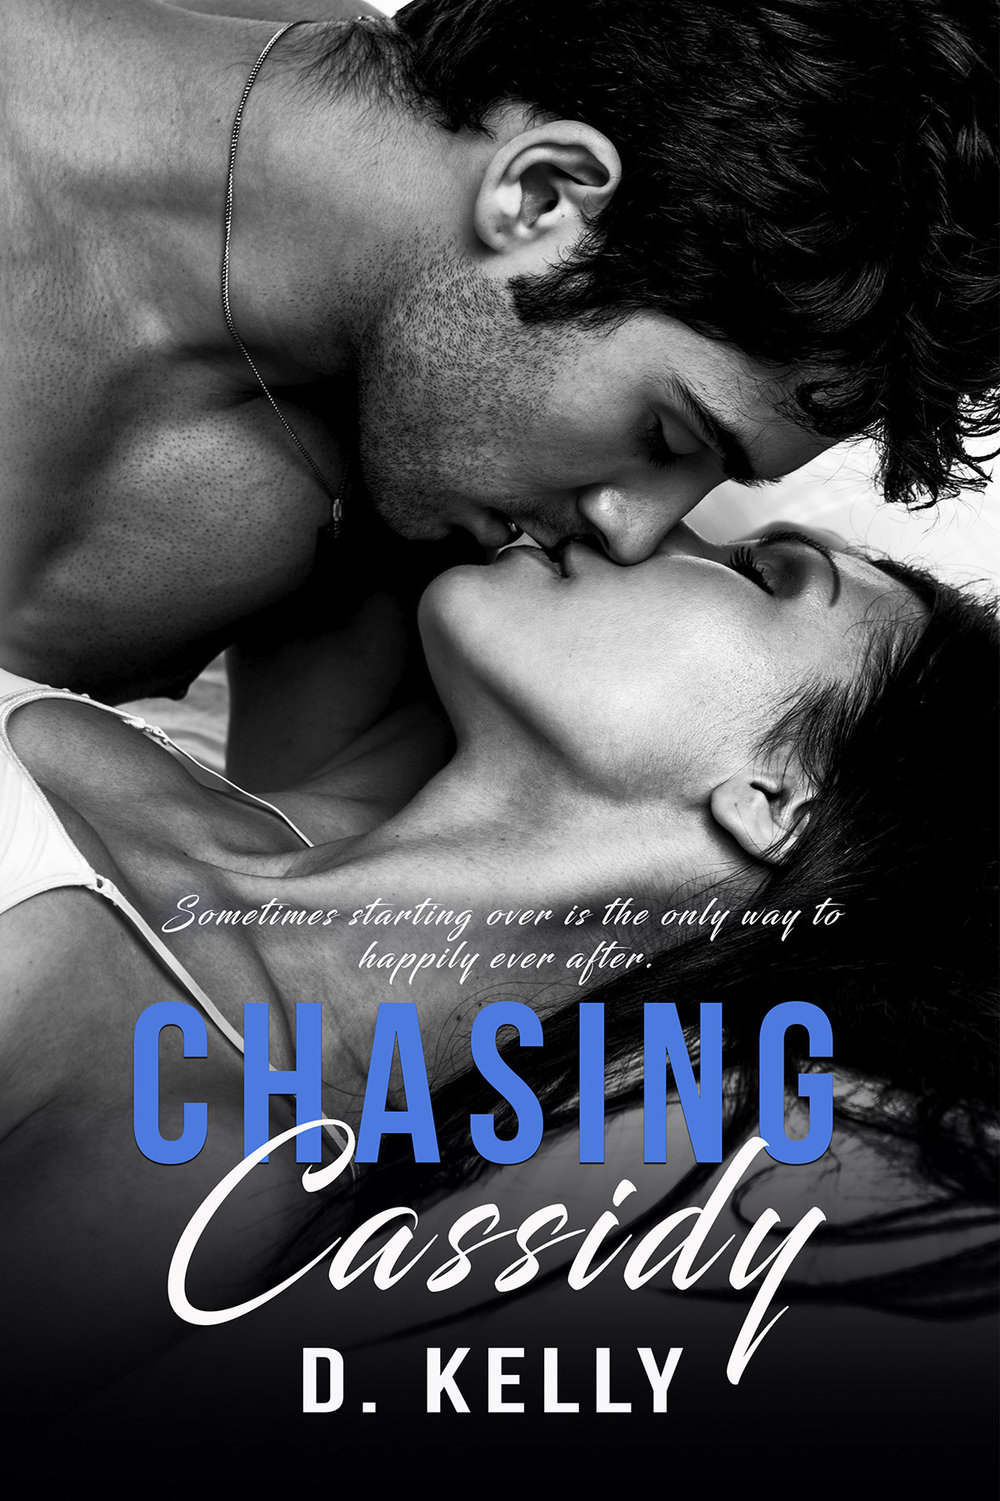 Chasing Cassidy Finished Ebook 1.jpg